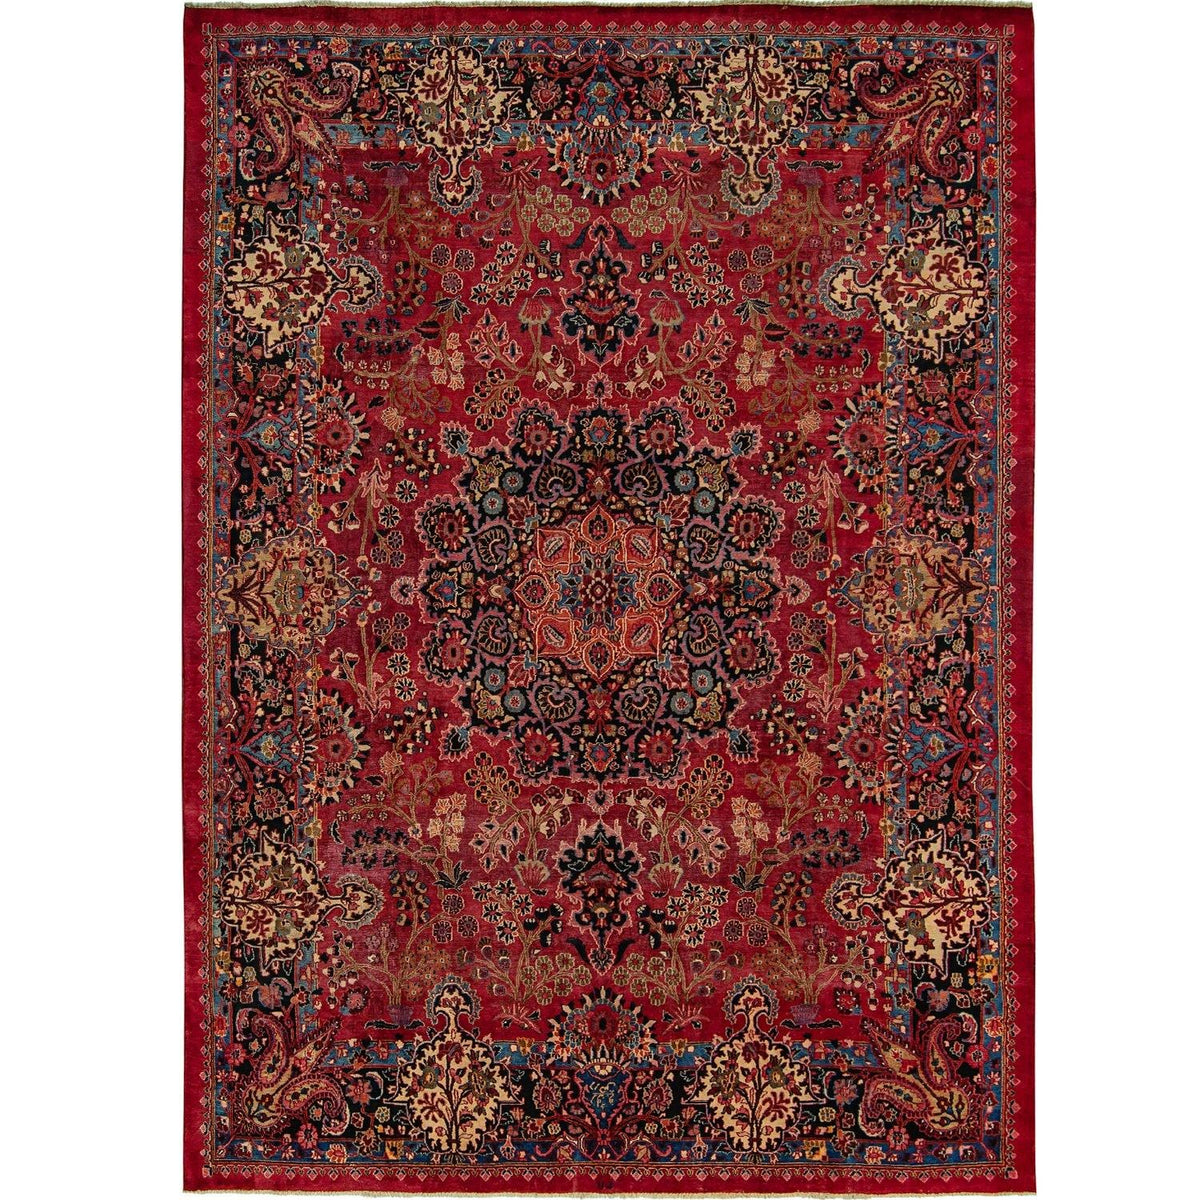 Vintage Hand-knotted Persian Kerman Wool Extra Large Rug (Signed) 288cm x 378cm Persian-Rug | House-of-Haghi | NewMarket | Auckland | NZ | Handmade Persian Rugs | Hand Knotted Persian Rugs